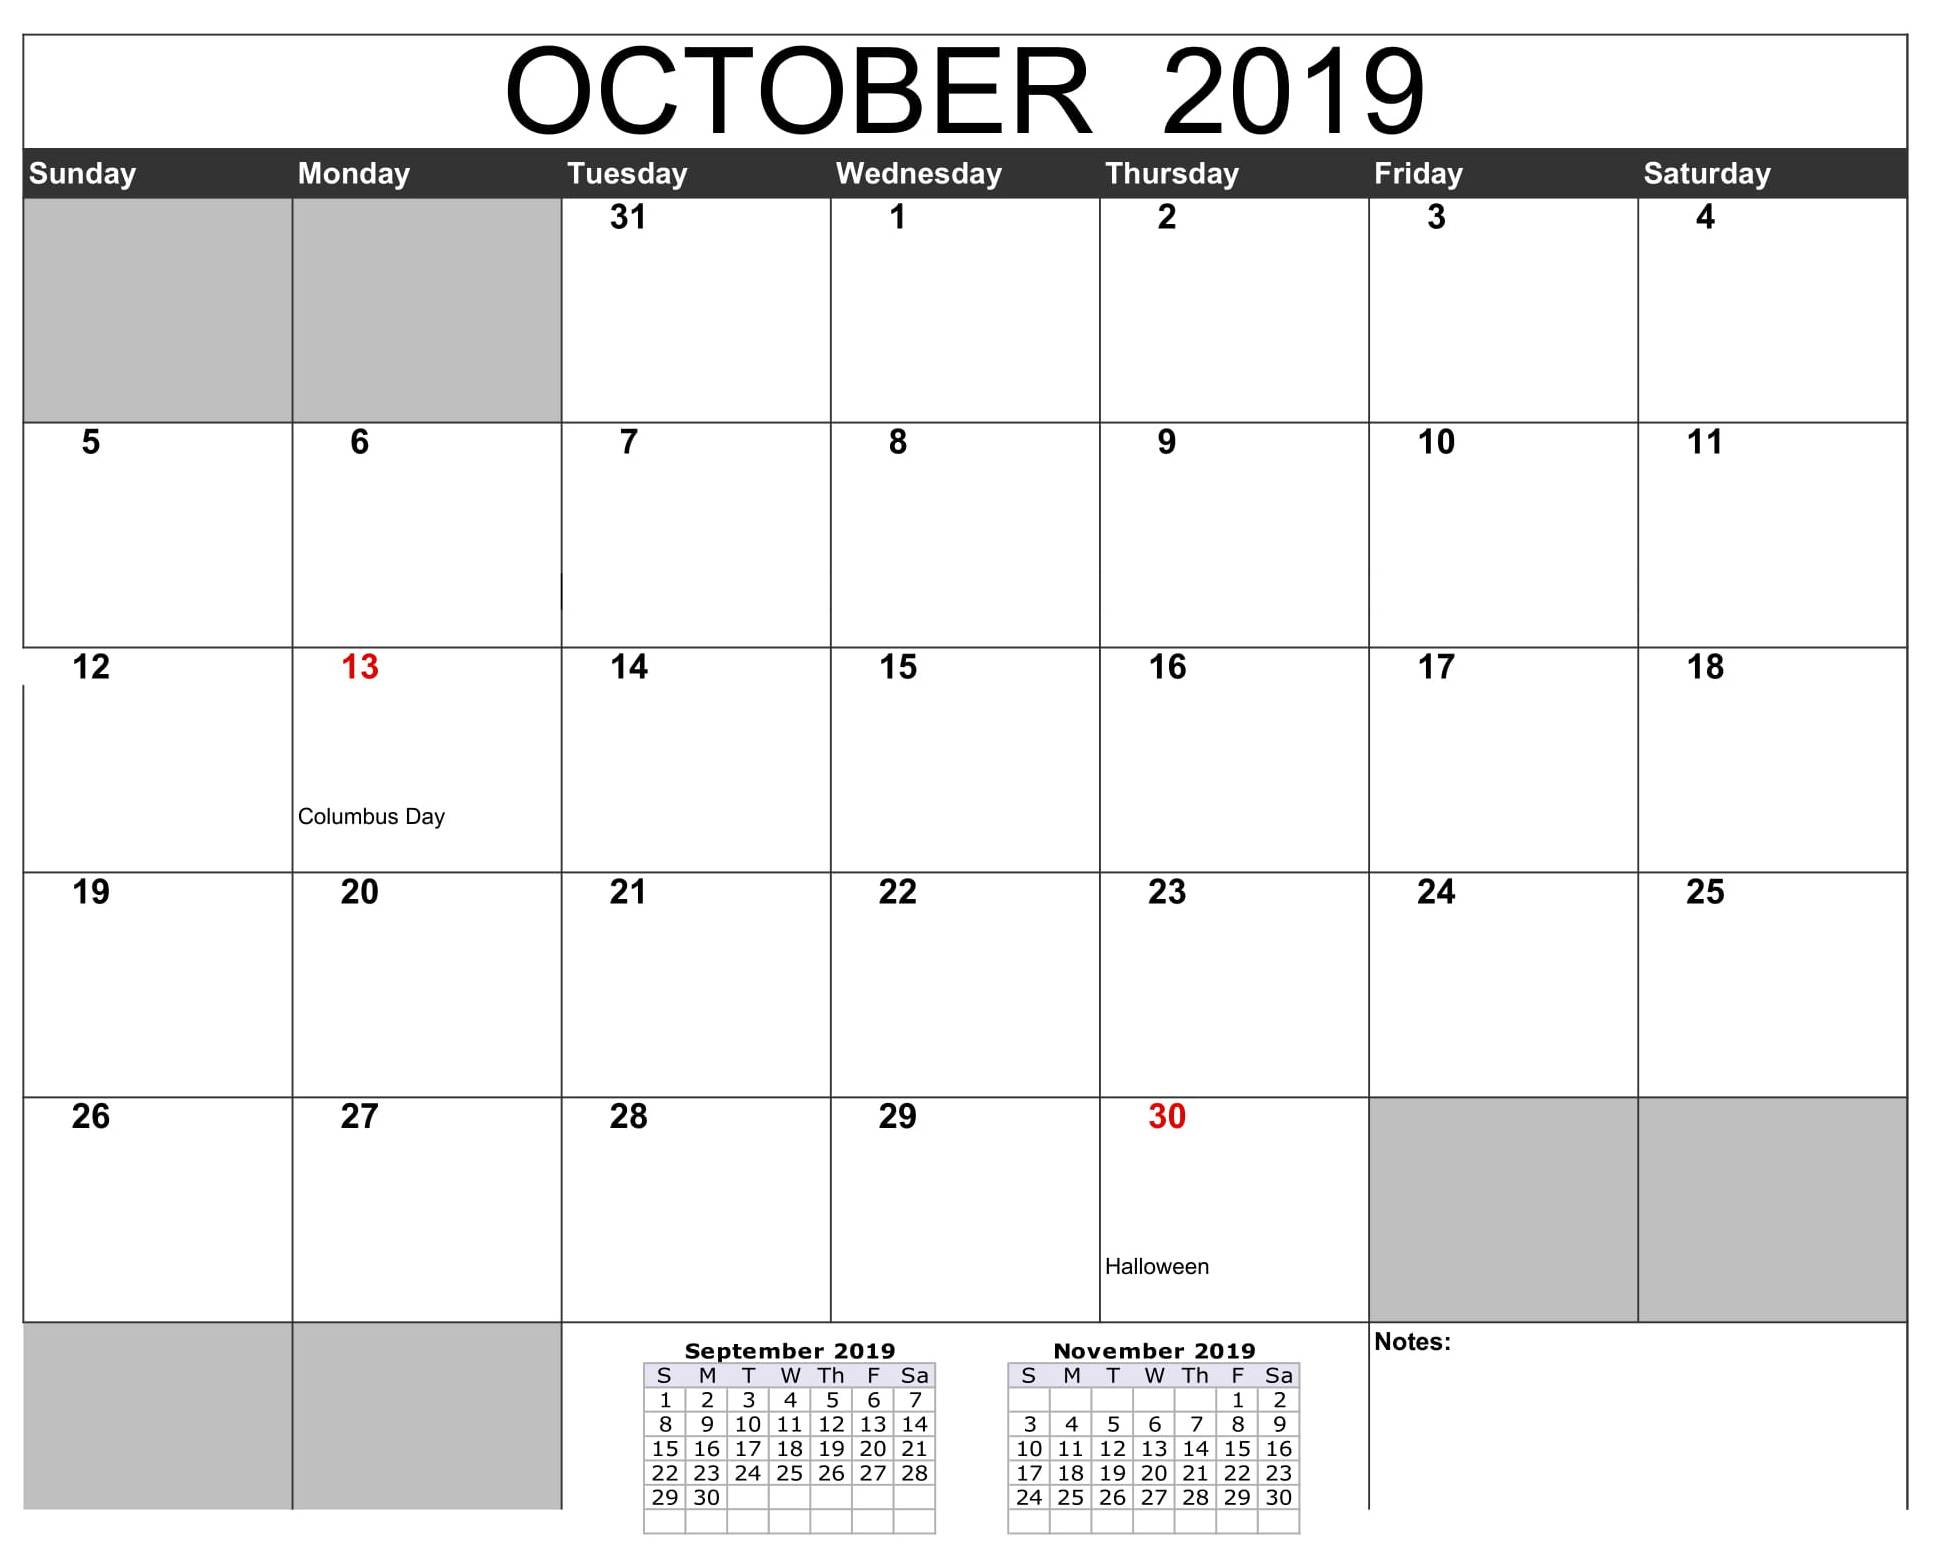 October 2019 Calendar USA Public Holidays